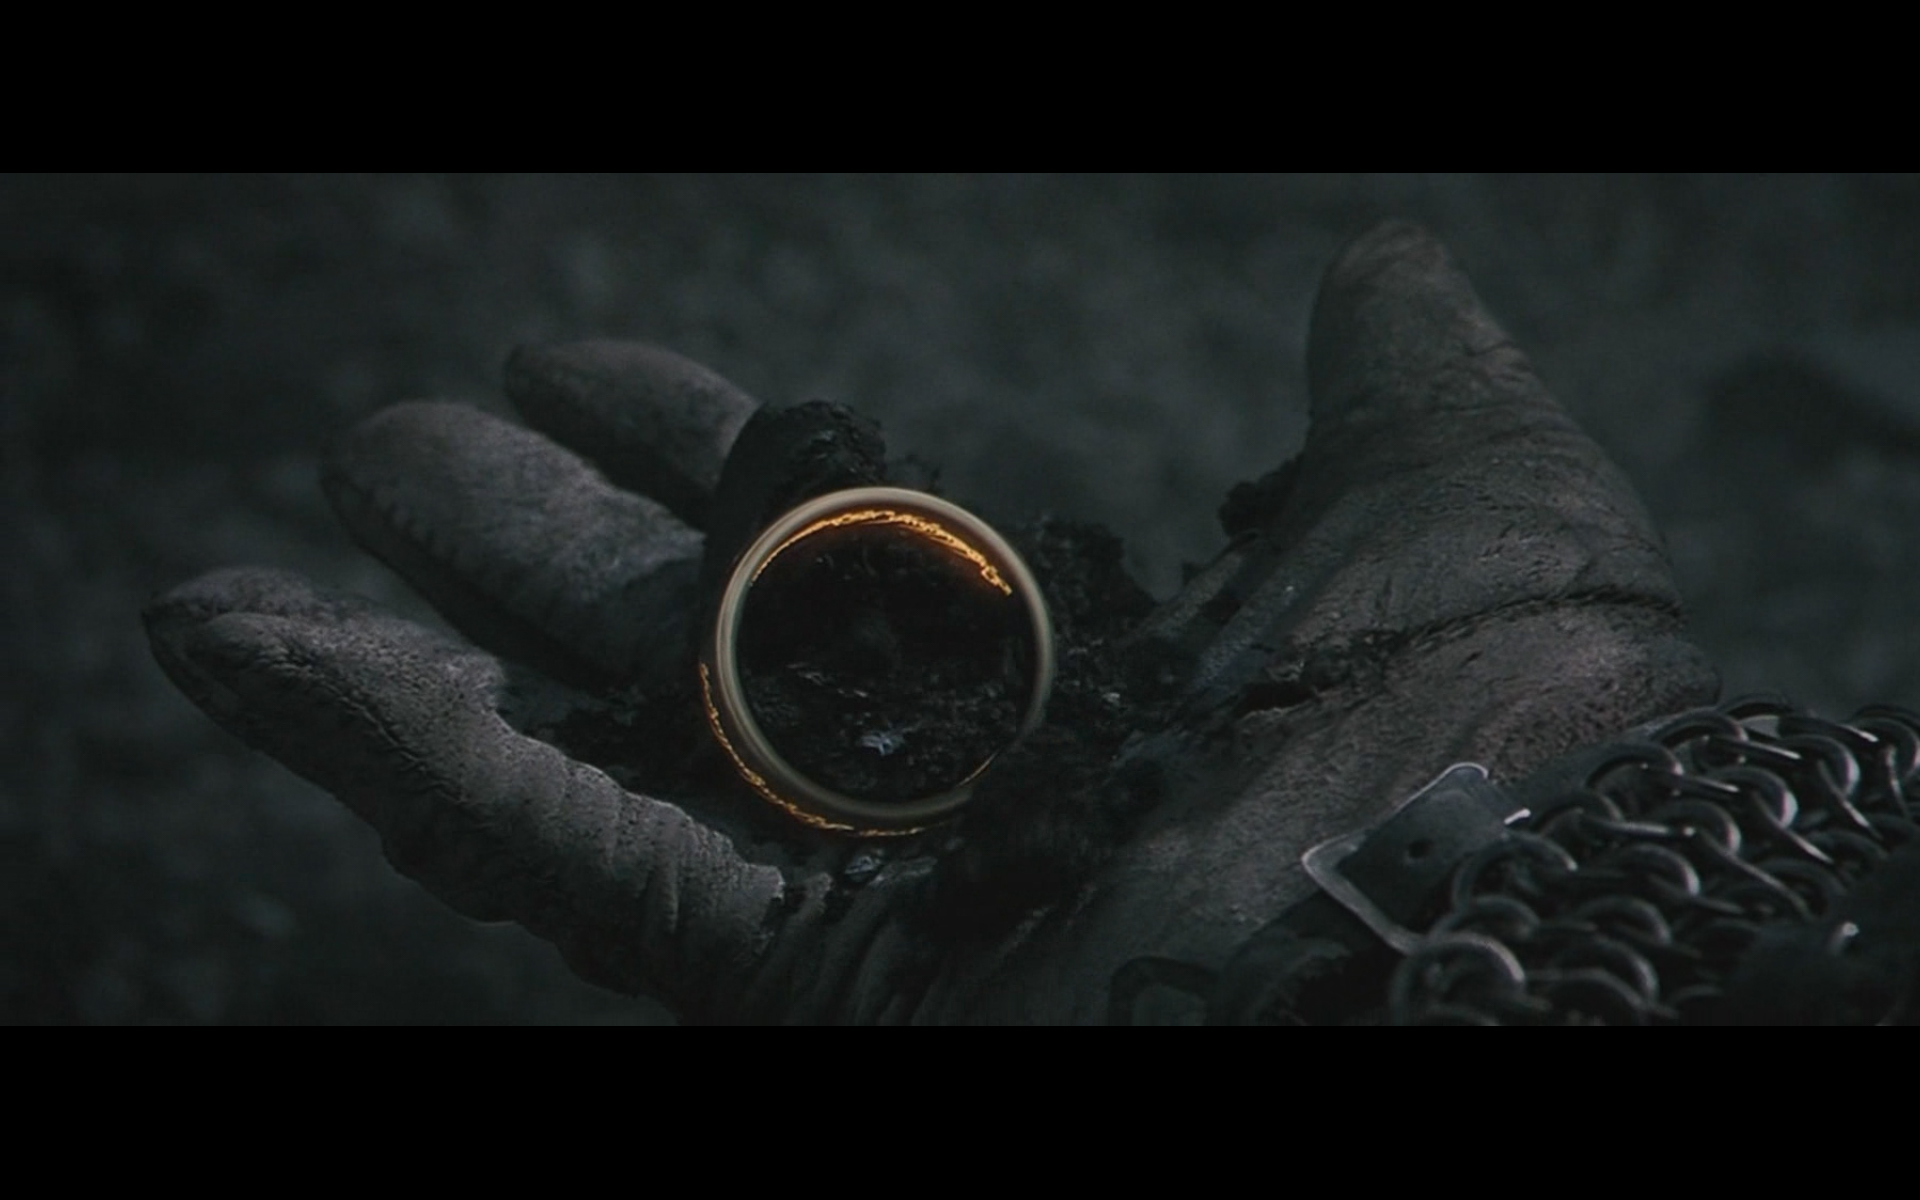 lord of the ring images